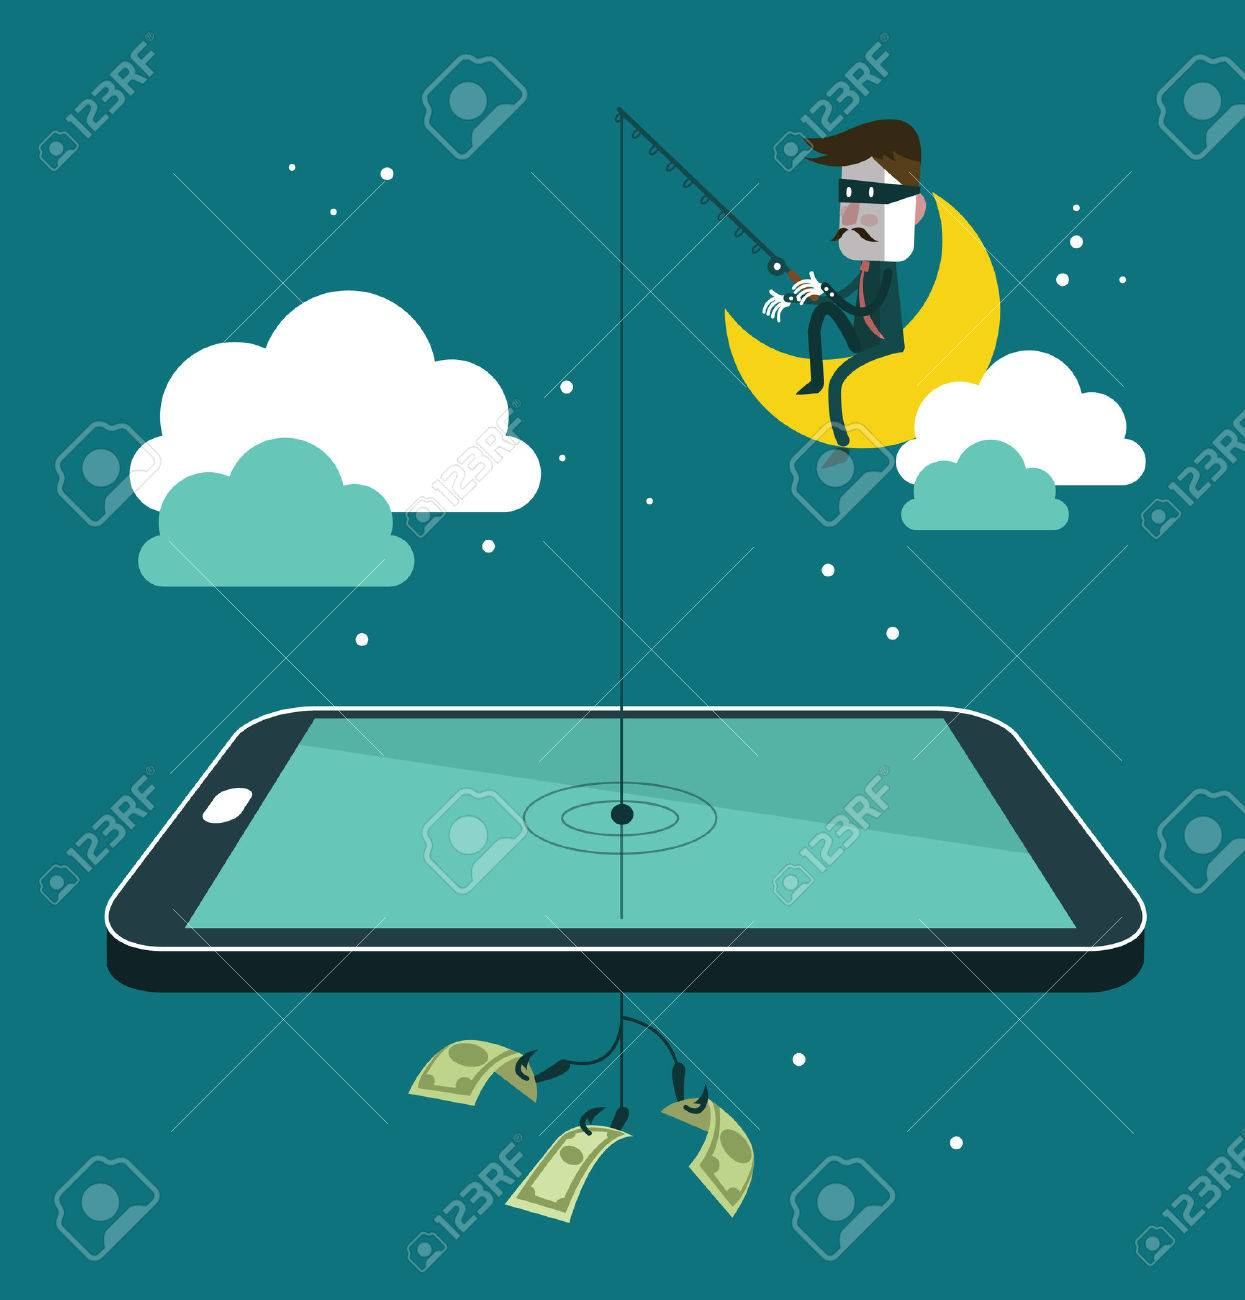 Social network thief stealing money by fishing dollar banknote from wallet on screen of smart phone. Flat design vector illustration - 31280622